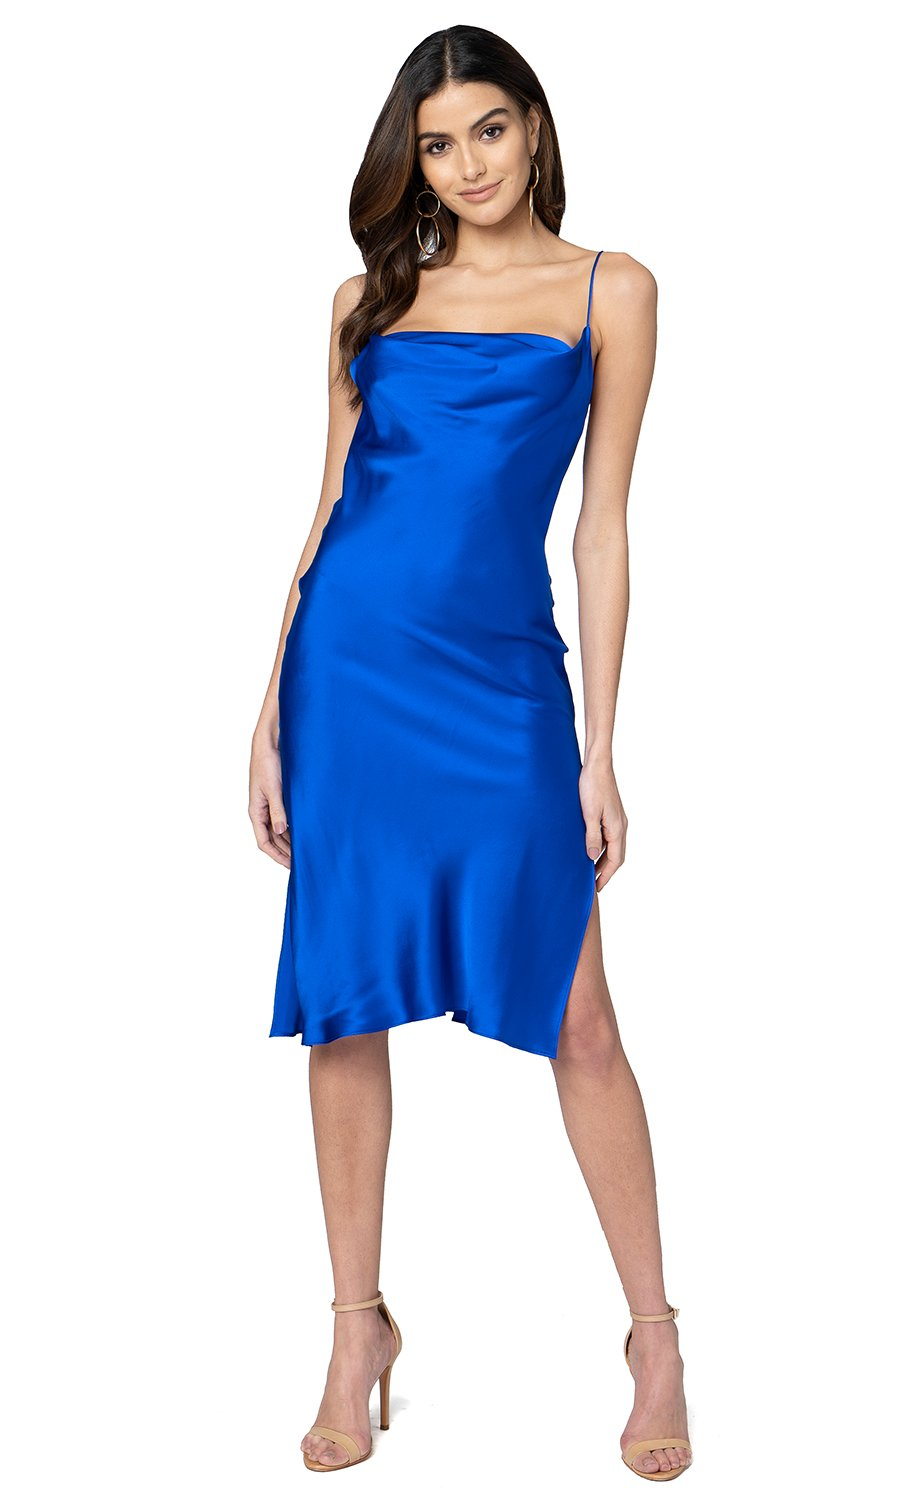 Jennifer Hope Clothing Silk Zozo Midi Slip Dress in Cobalt Blue